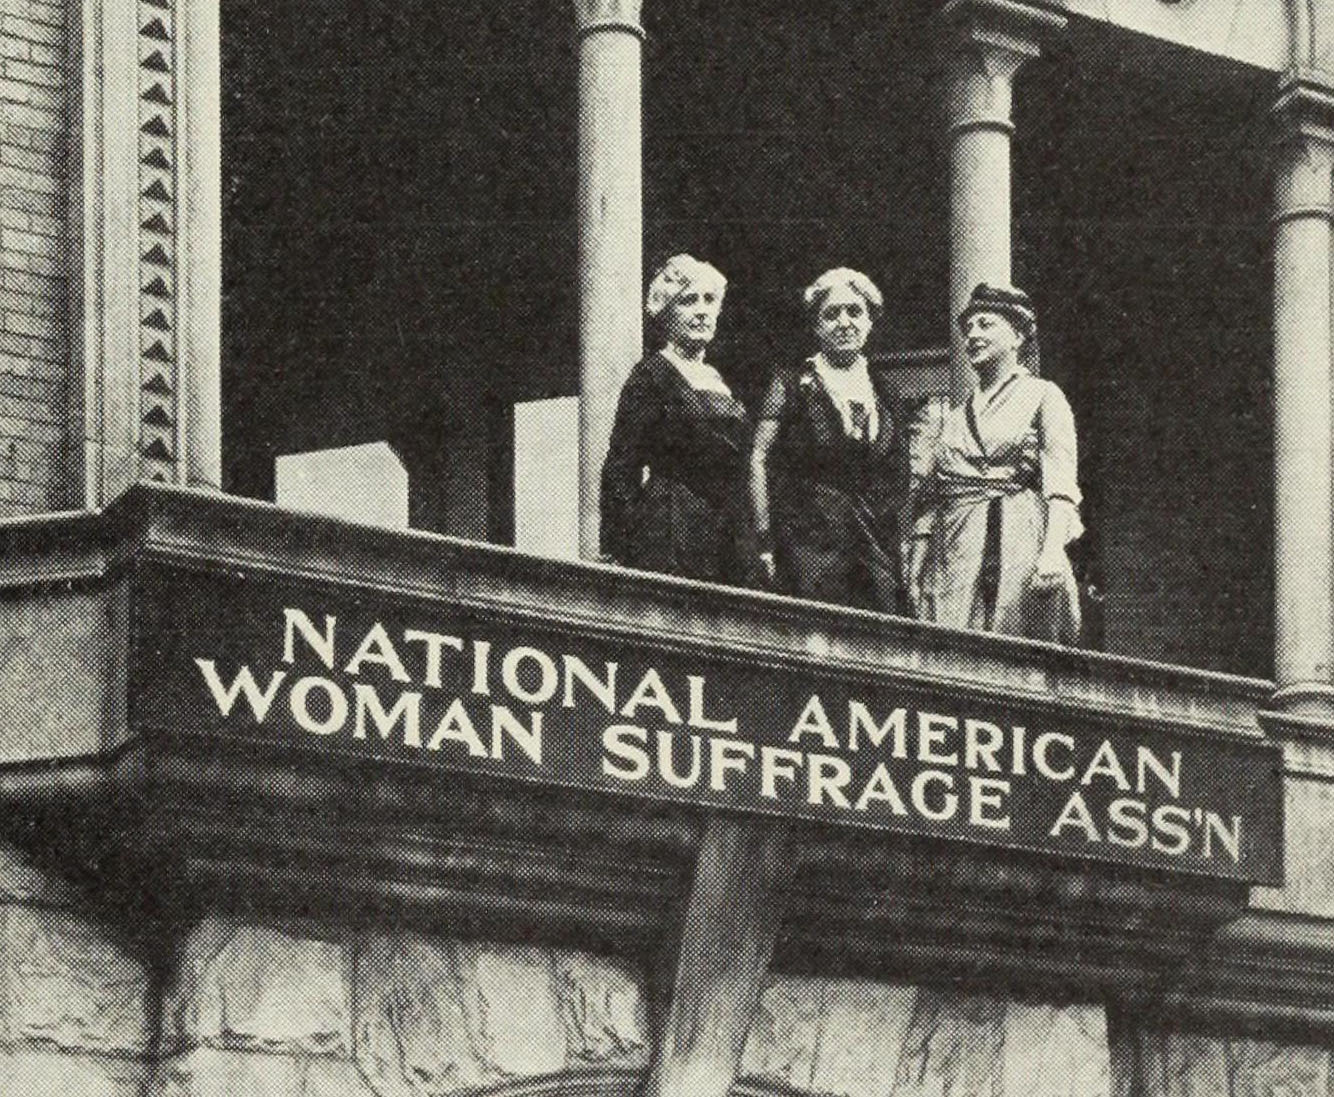 Antique Suffrage Photo Civil Rights Voting Rights Print Vintage Freedom Women/'s Suffrage History 1920 19th Amendment